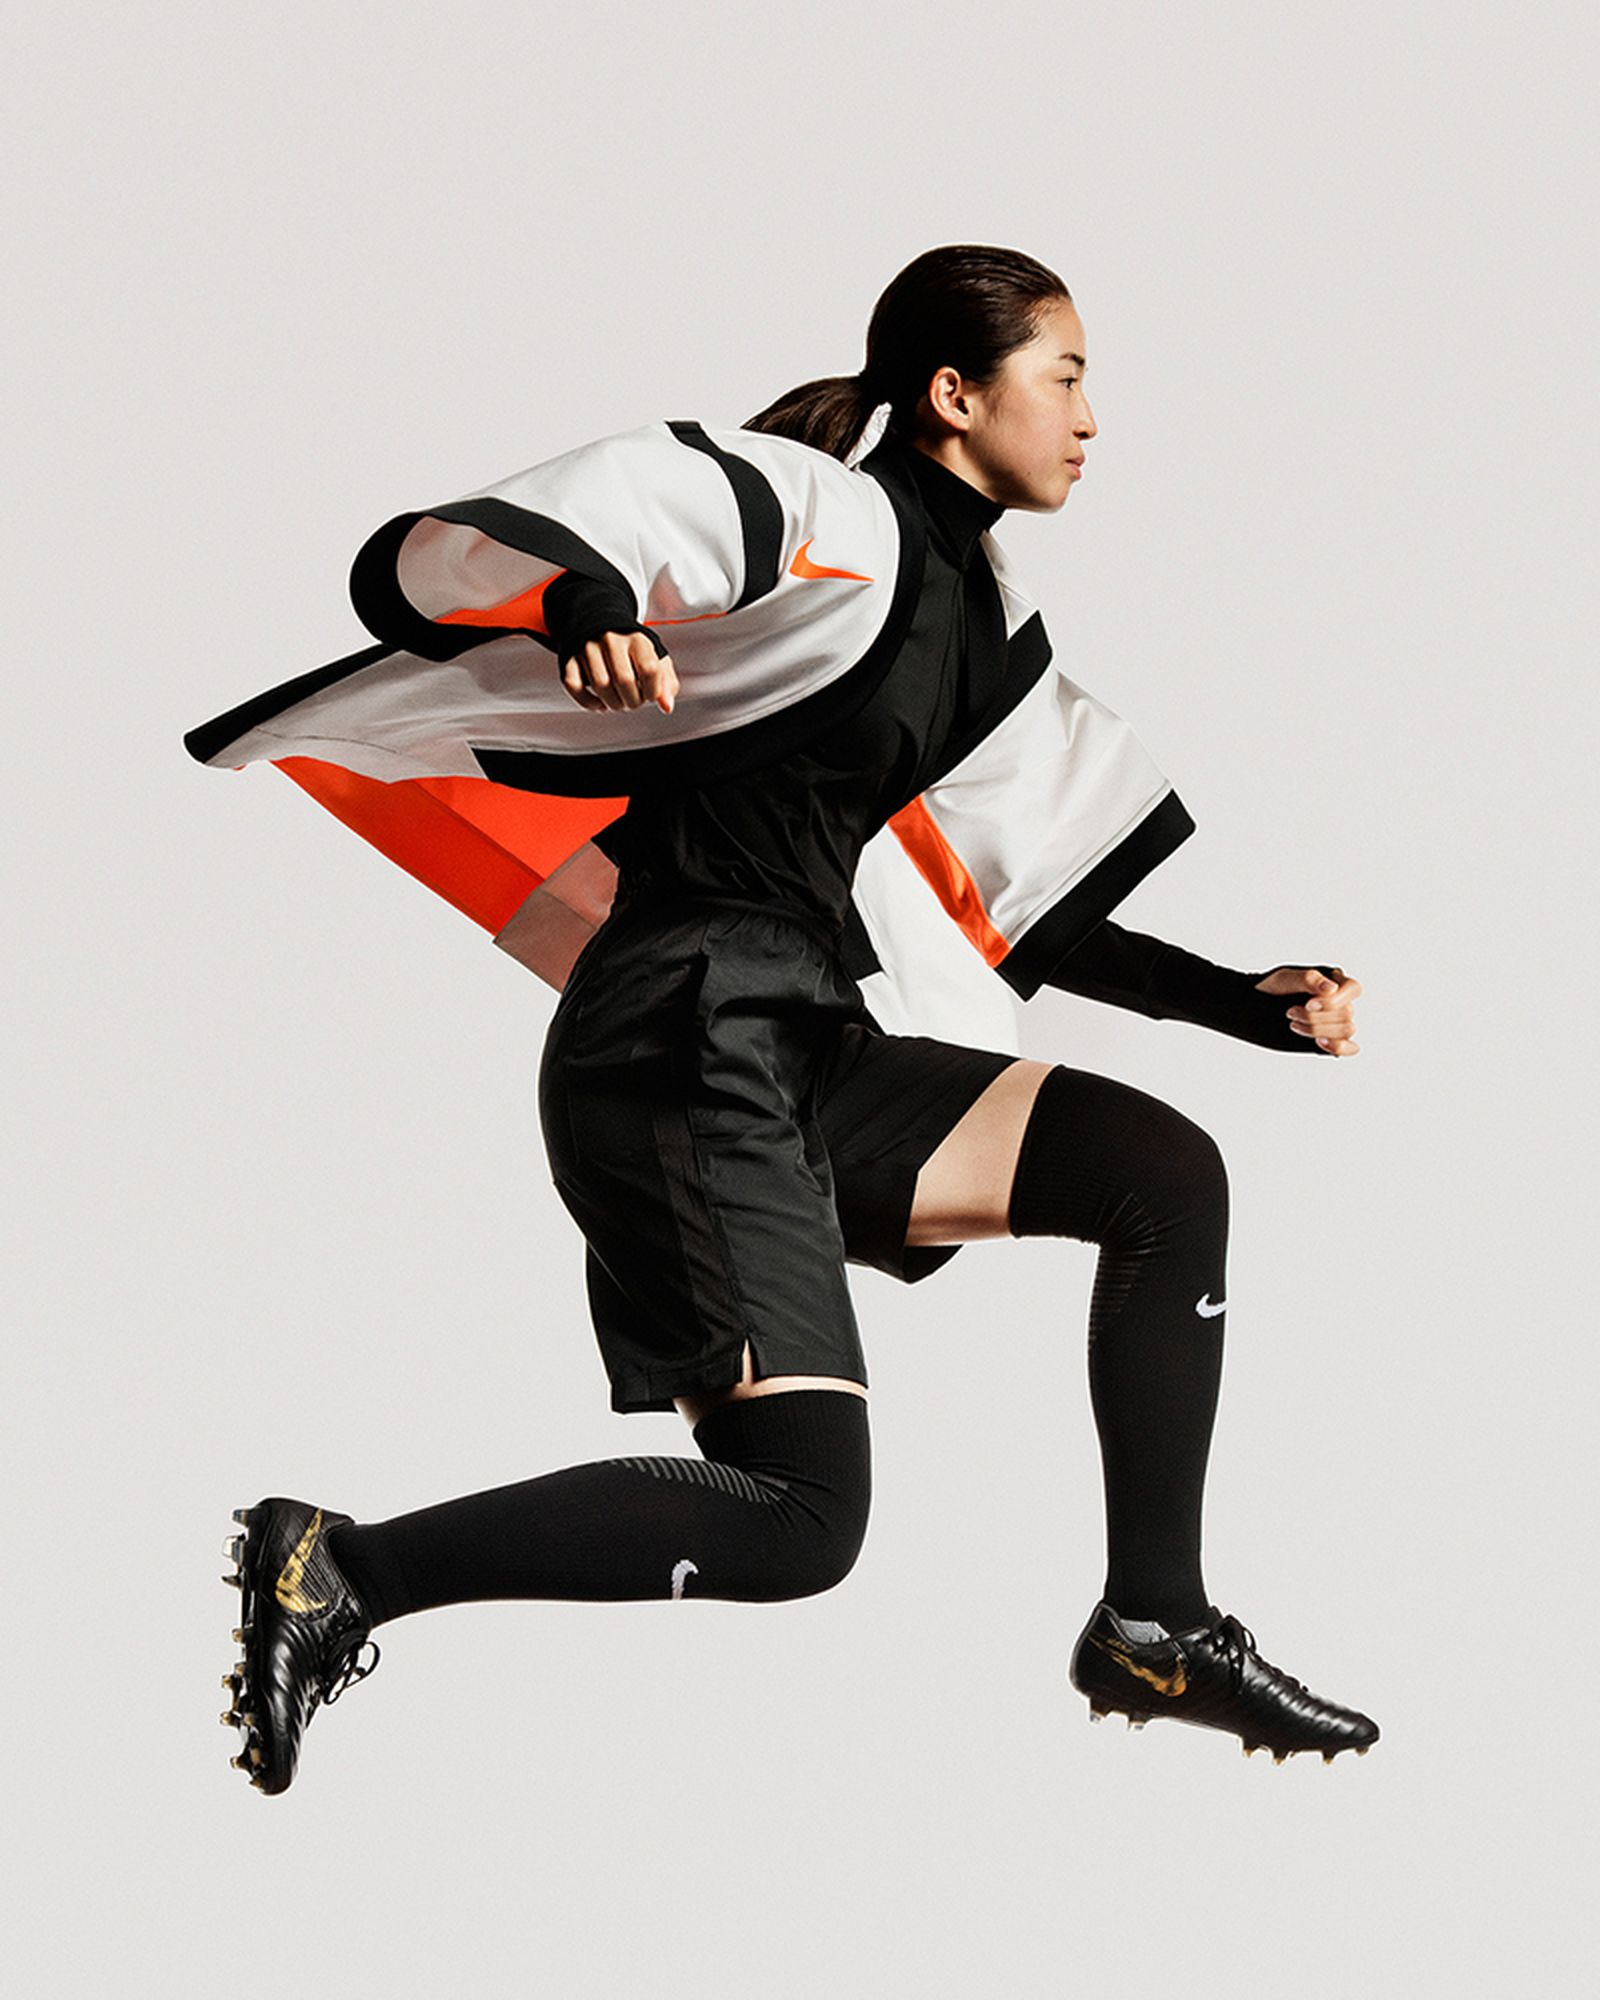 nike hopes womens world cup can change womens sports forever Women's World Cup identity & representation